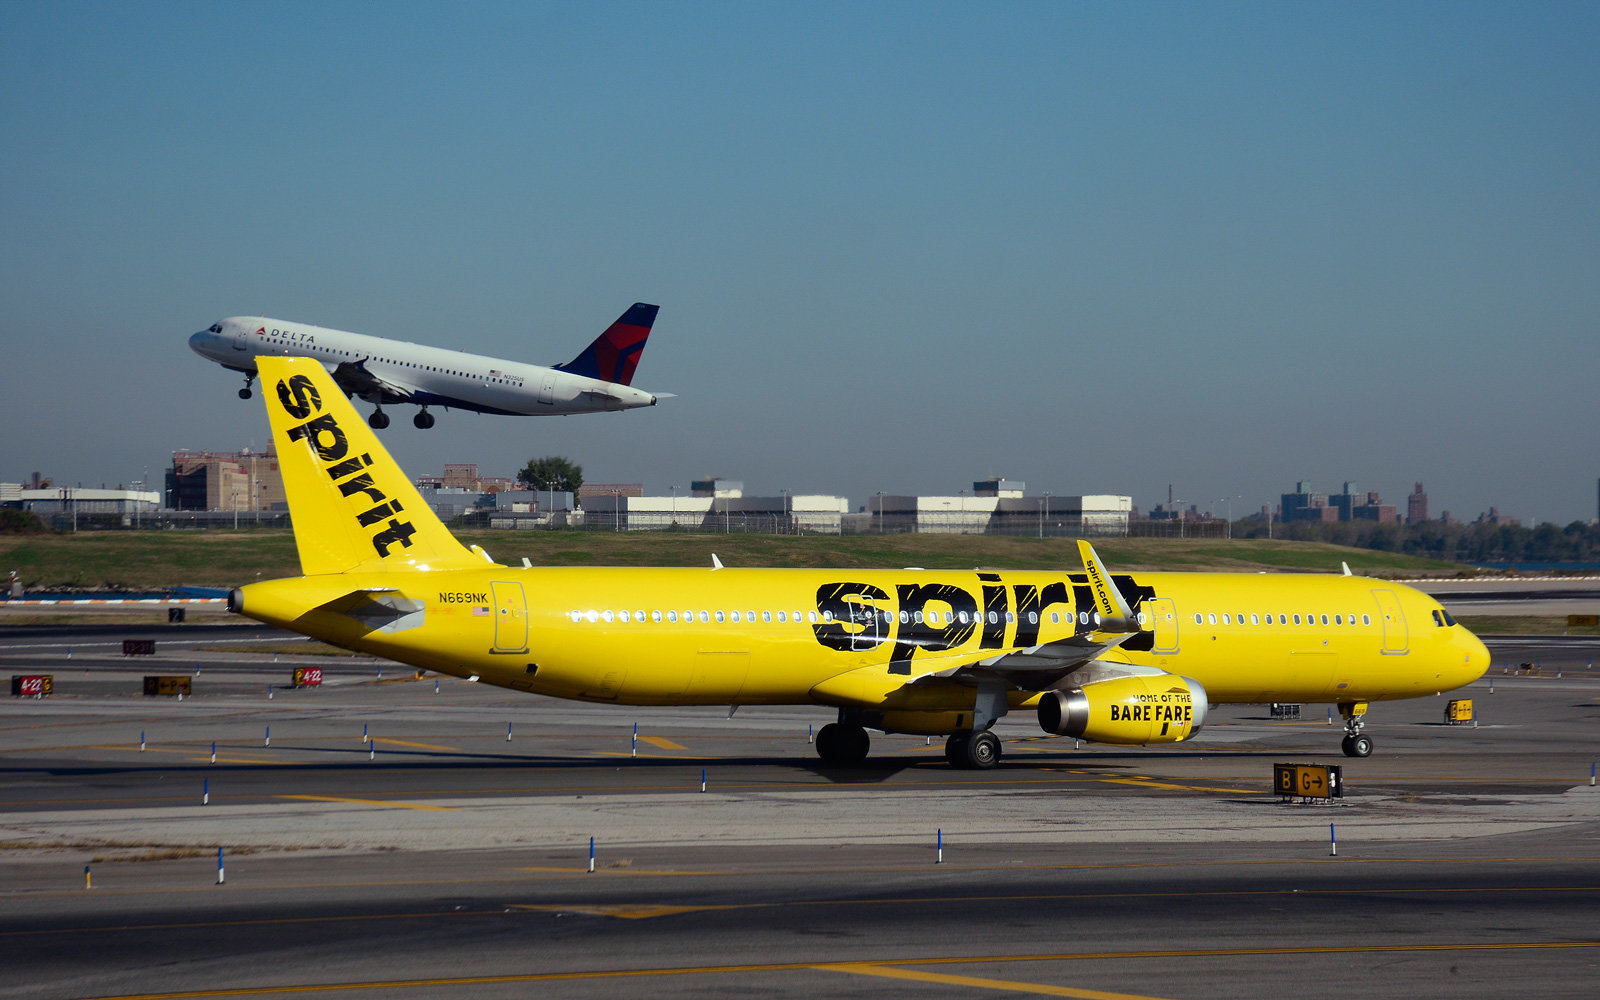 Does Spirit Airlines have wifi?